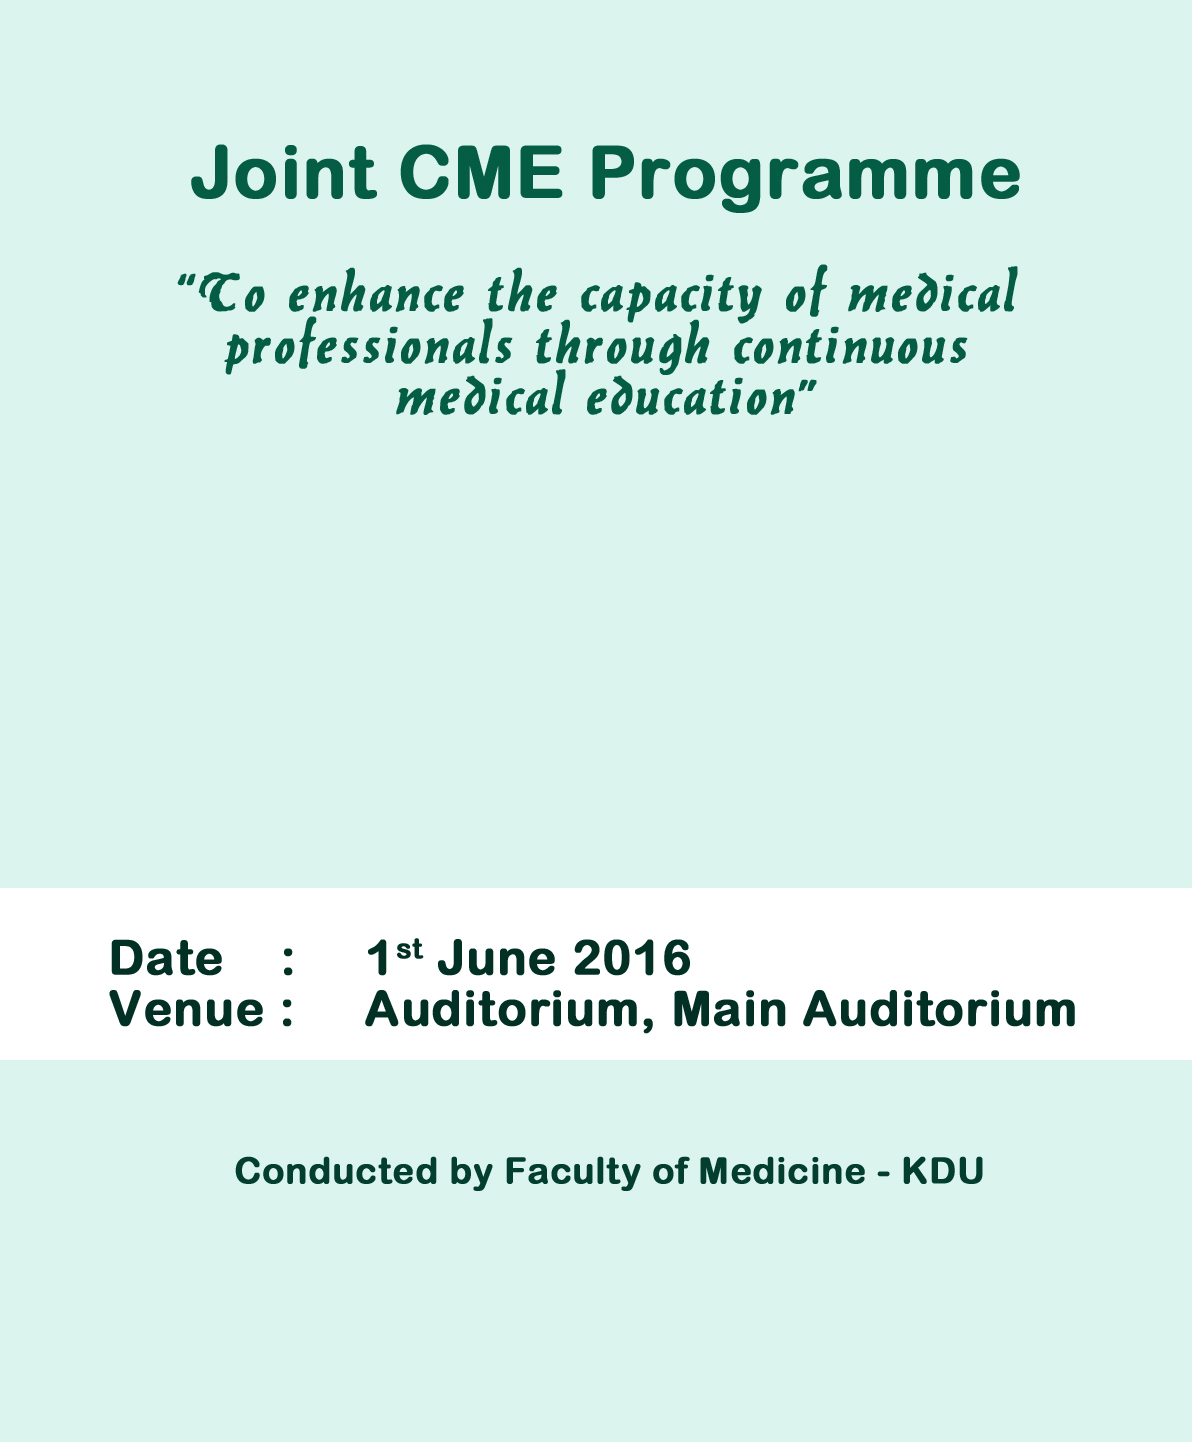 Joint CME Programme